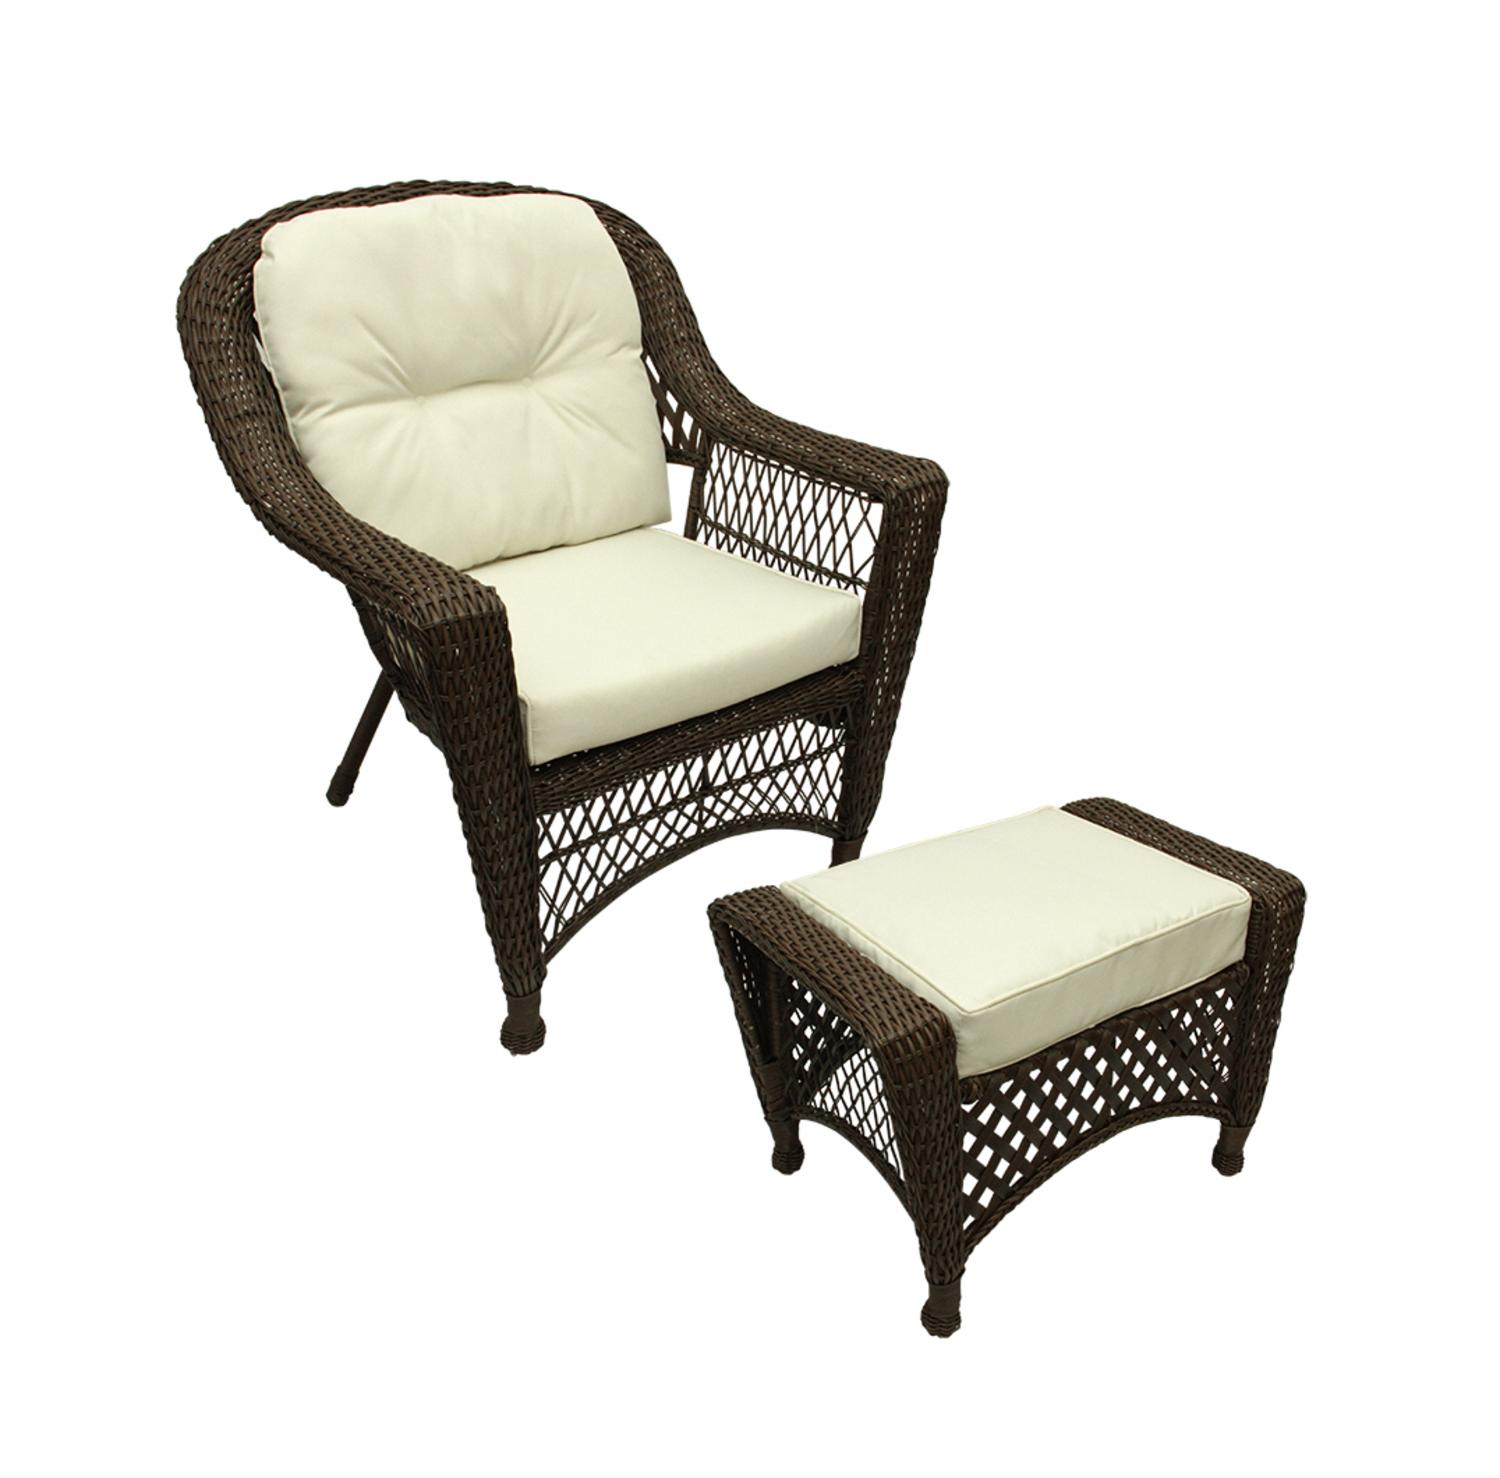 2 Pc Somerset Dark Brown Resin Wicker Patio Chair Ottoman Furniture Set Cream Cushions